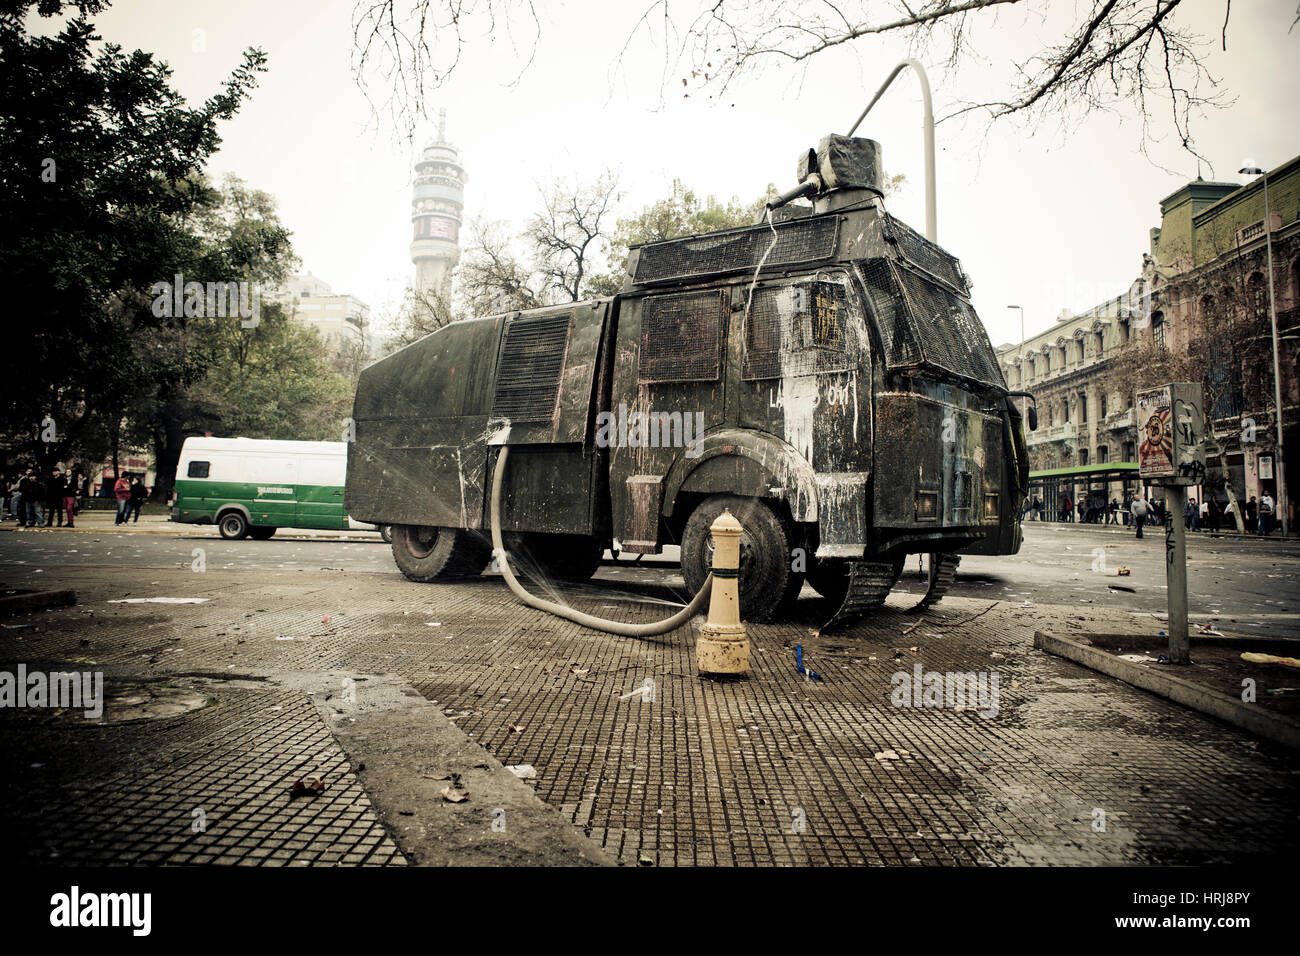 Chilean police water cannon on the street during a student strike in Santiago's Downtown, Chile. - Stock Image